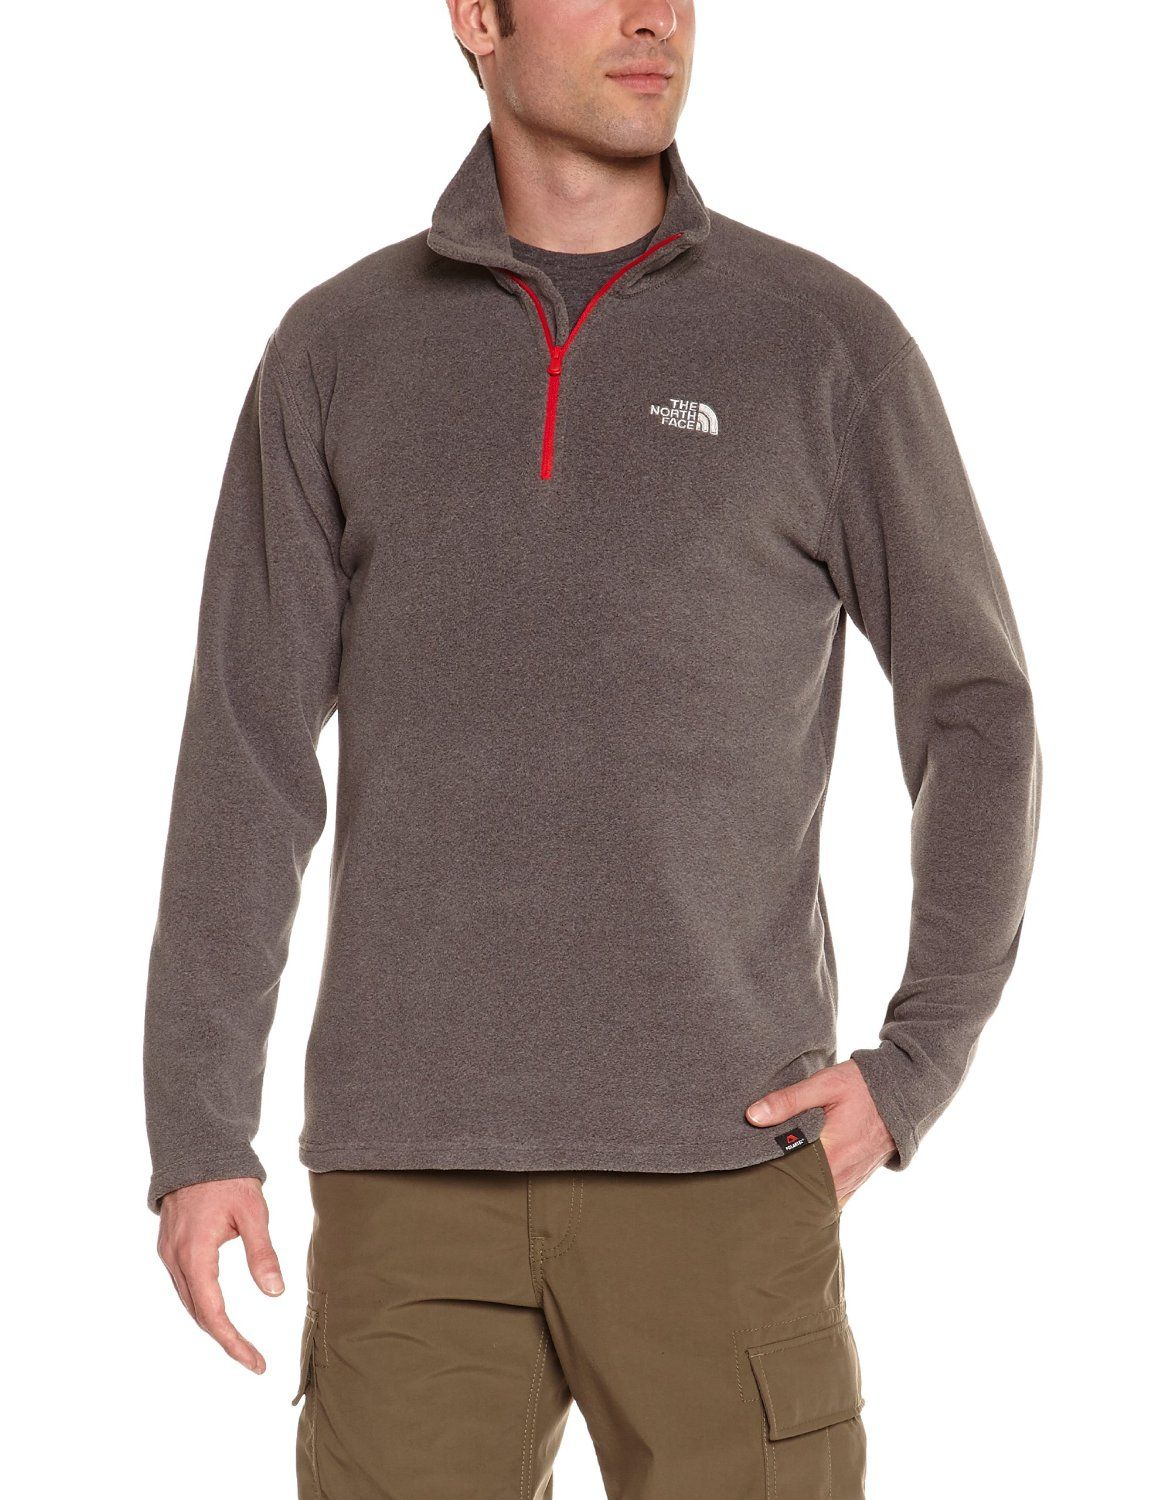 The-North-Face-Mens-100-Glacier-1-4-Zip-Pullover-Lightweight-Fleece